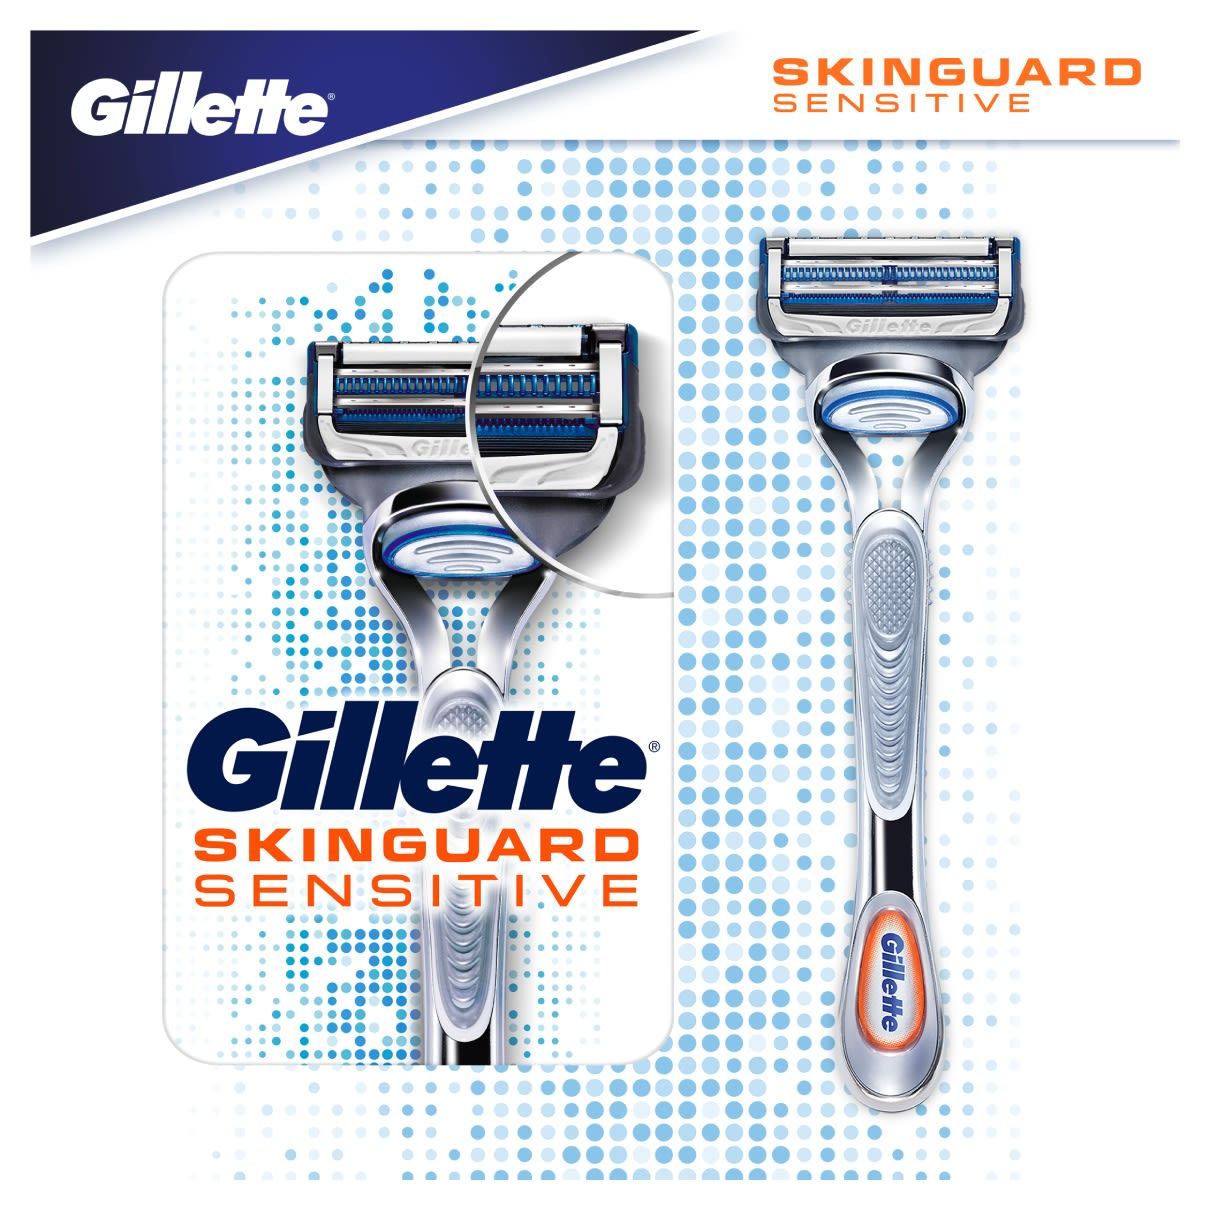 Gillette SkinGuard Razor for sensitive skin